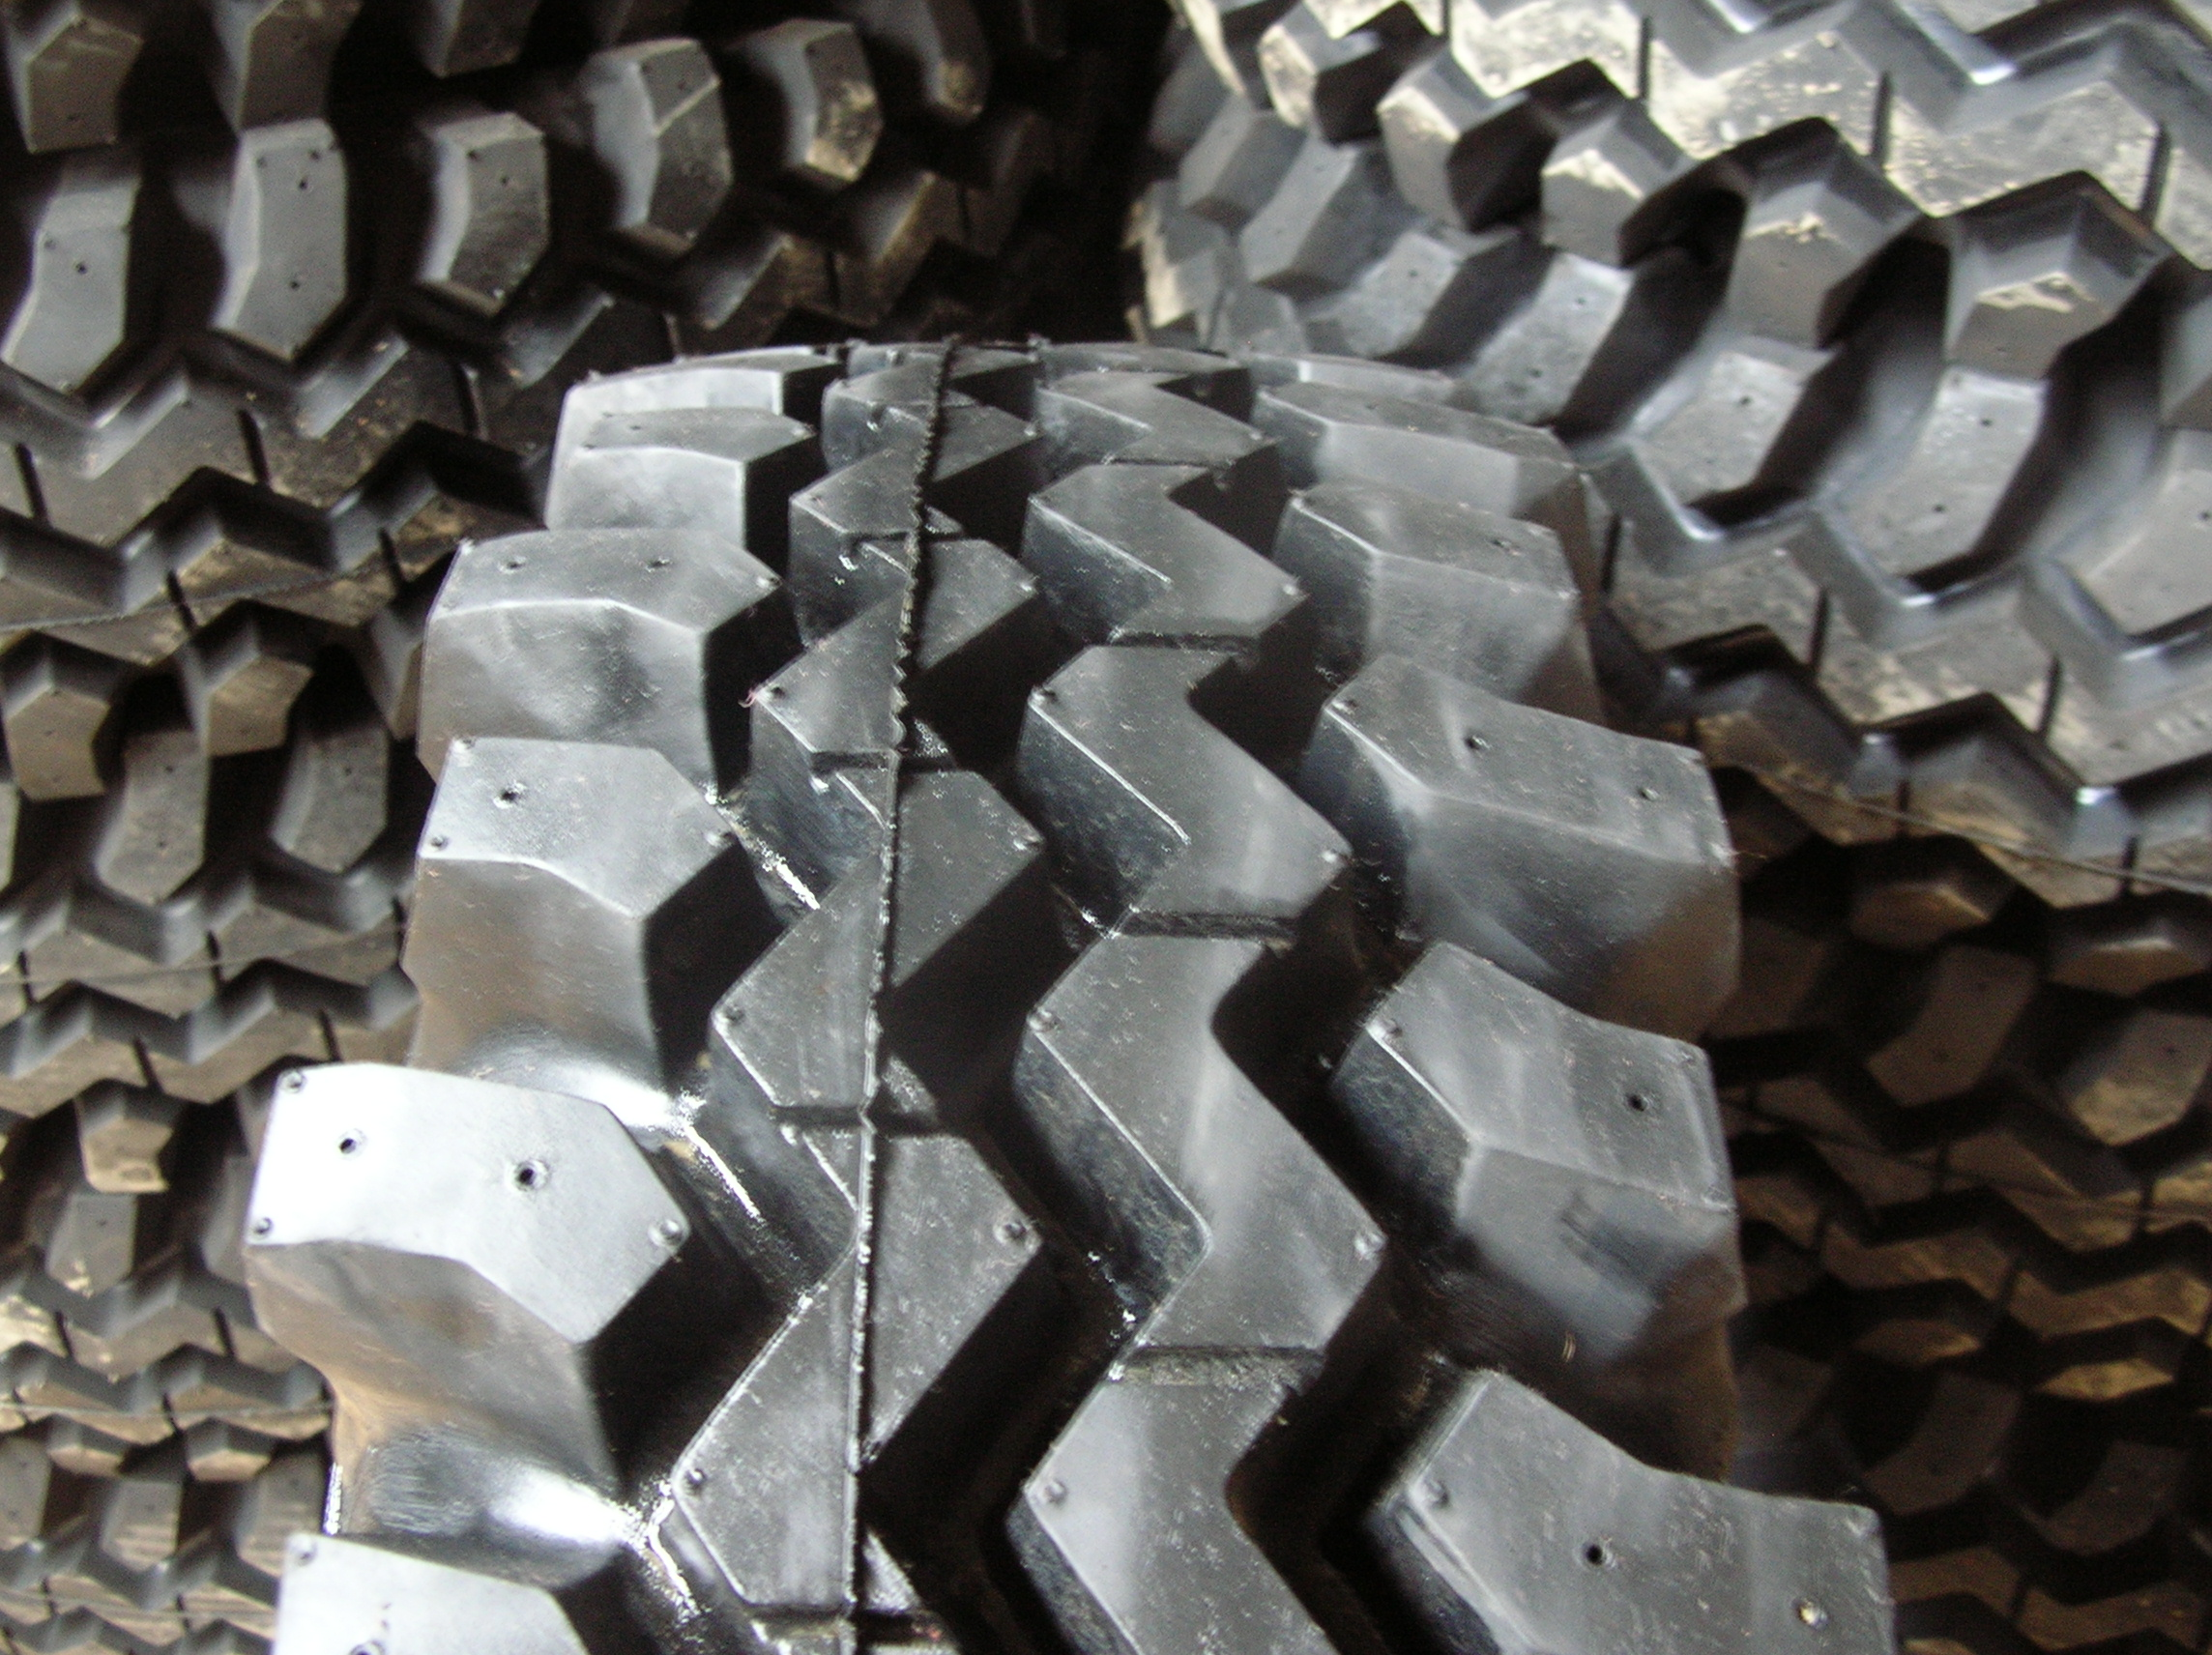 Cheap Mud Tires For Trucks >> Buckshot Wide Mudder Tires are Back in Stock! | Your Next Tire Blog